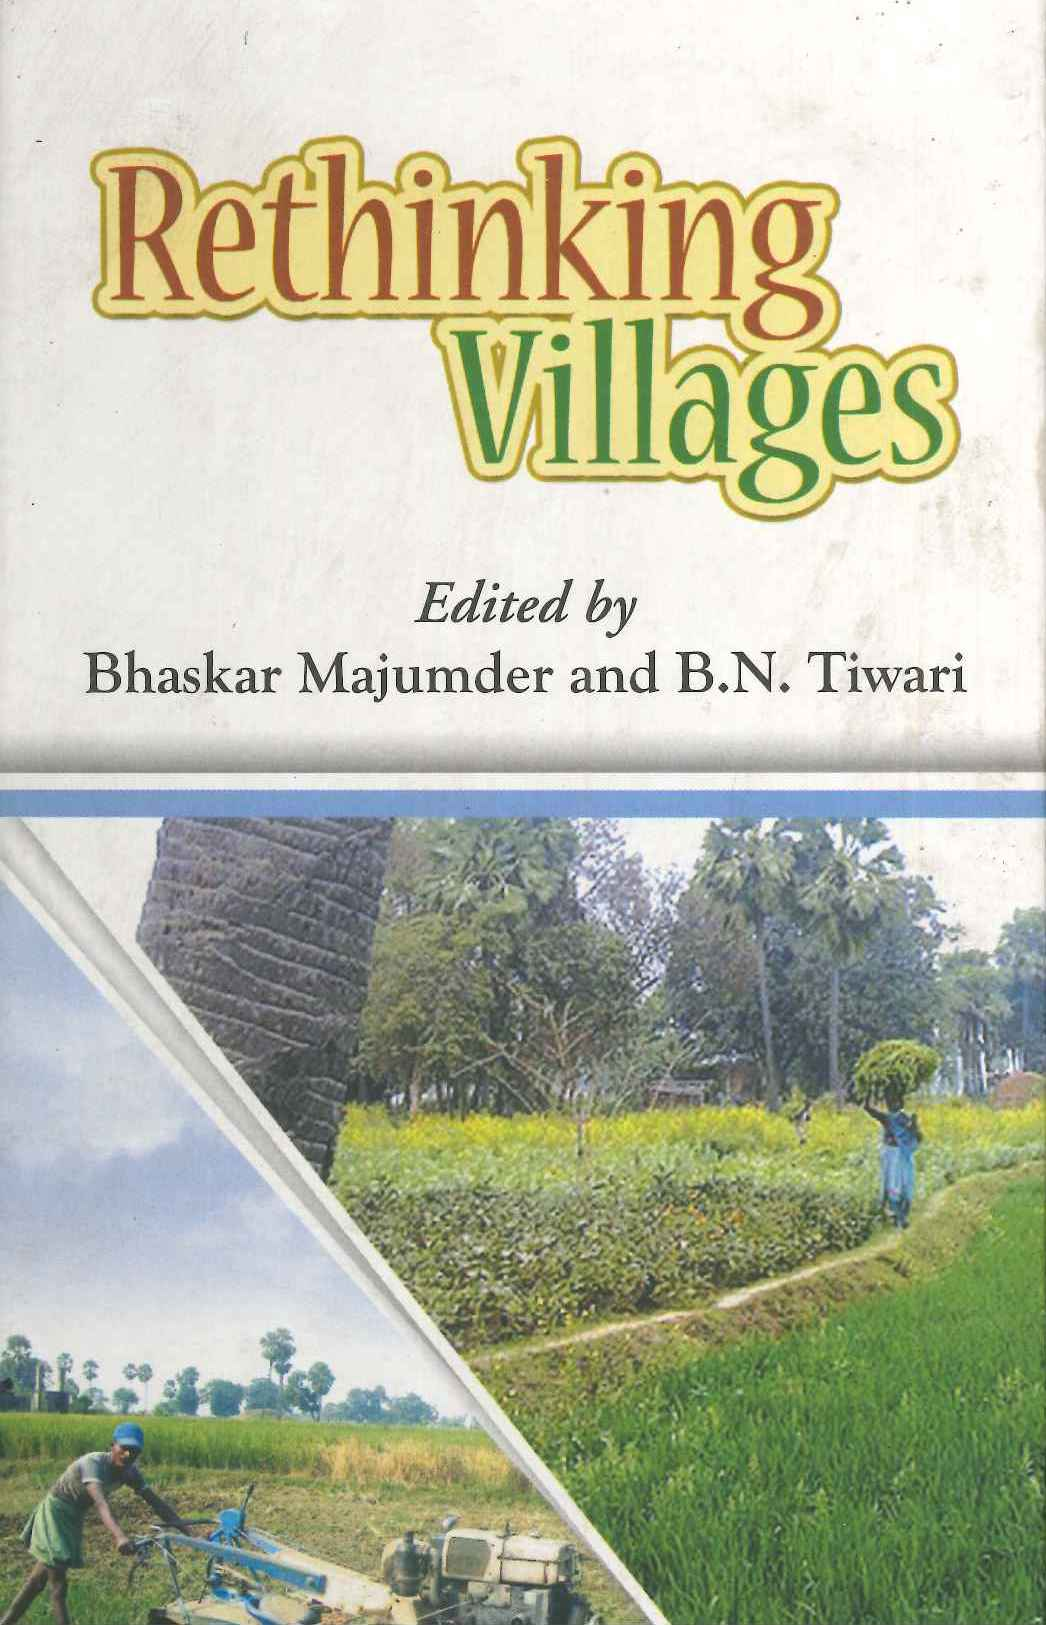 Rethinking Villages